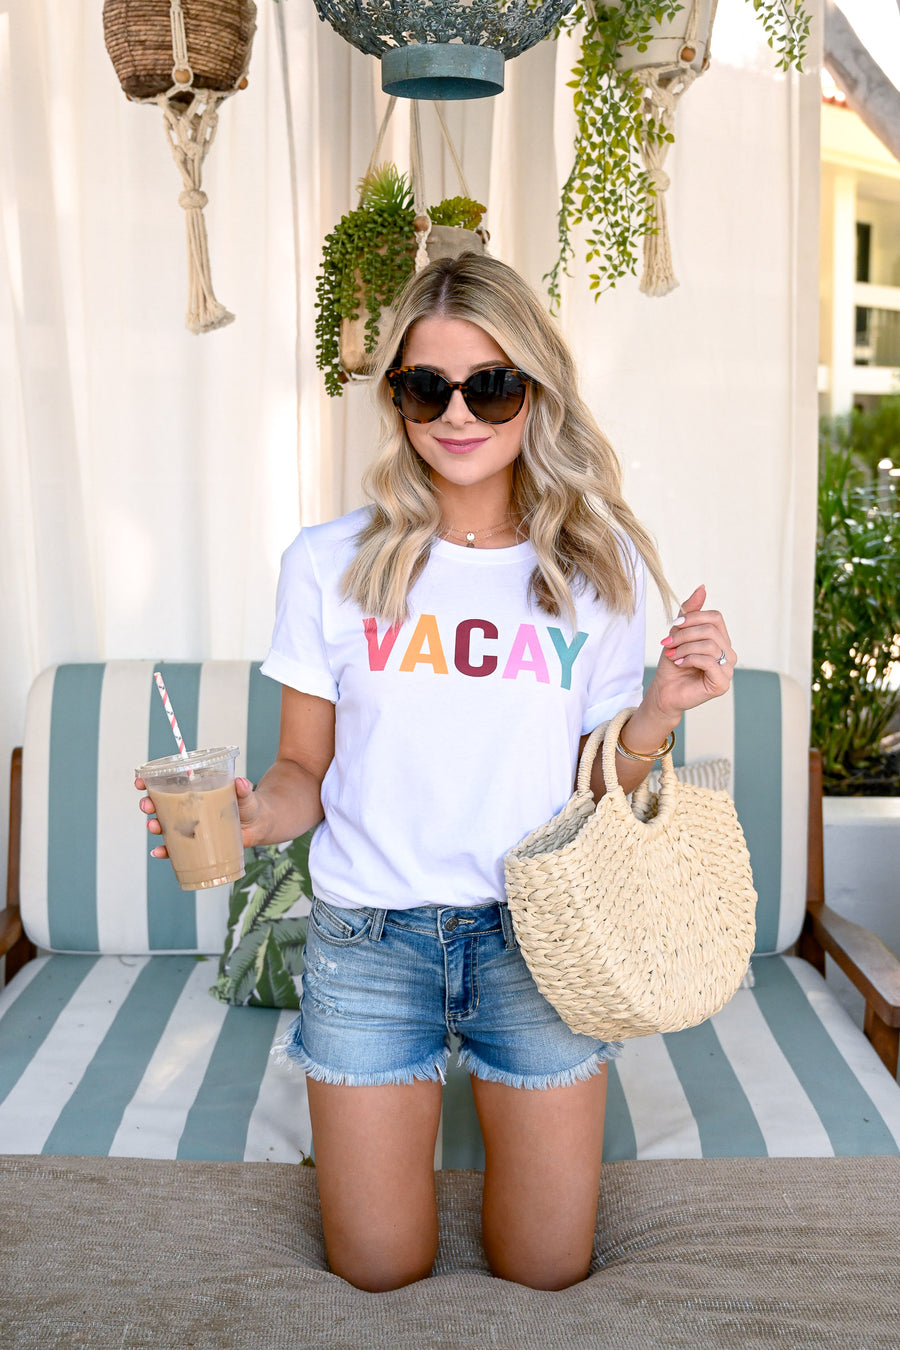 """Vacay"" Graphic Tee - White women's colorful graphic t-shirt, Closet Candy Boutique 1"